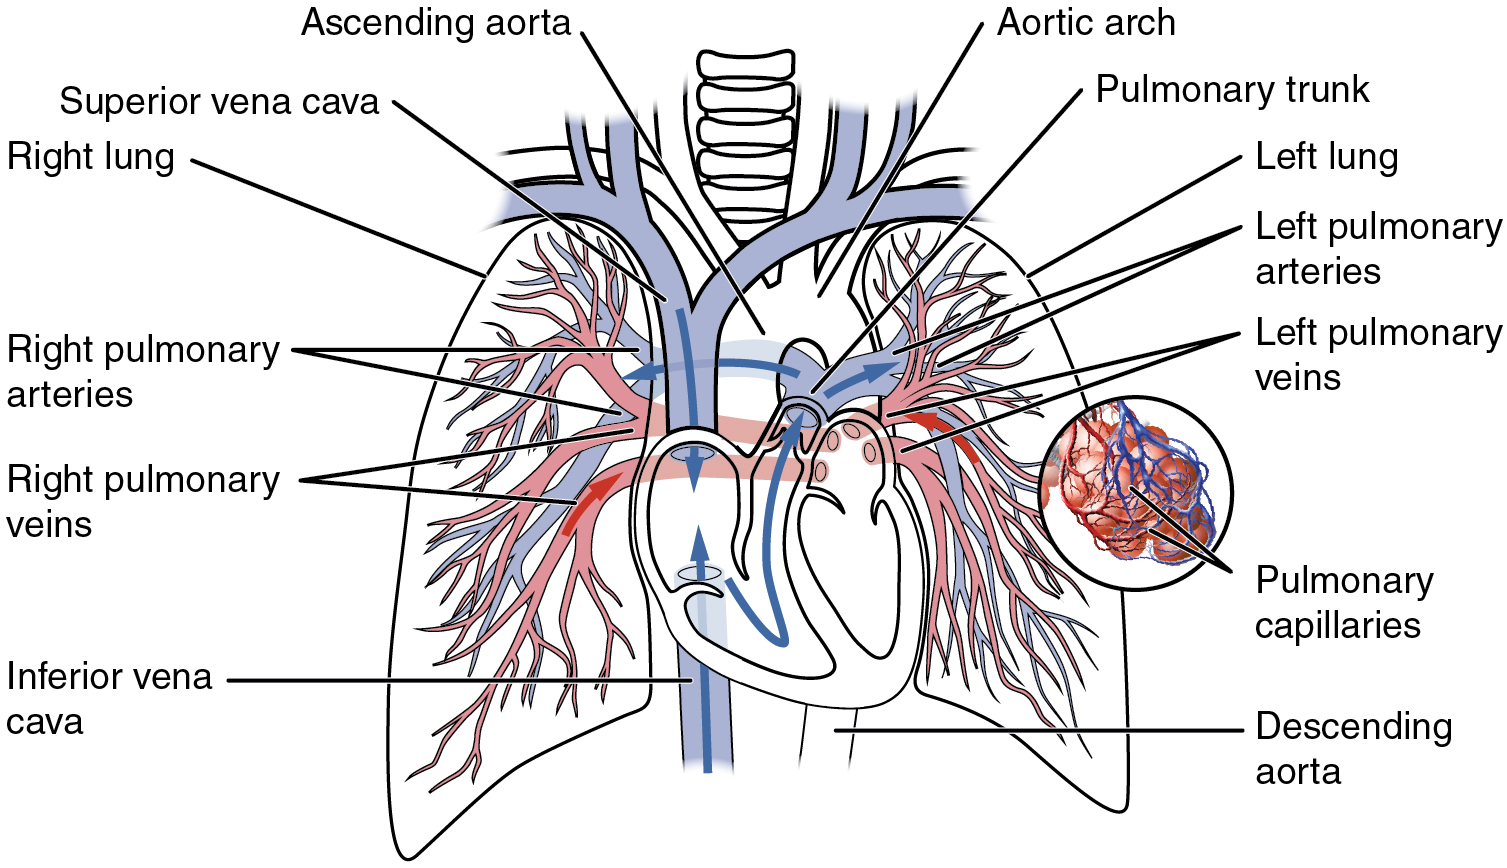 hight resolution of this diagram shows the network of blood vessels in the lungs